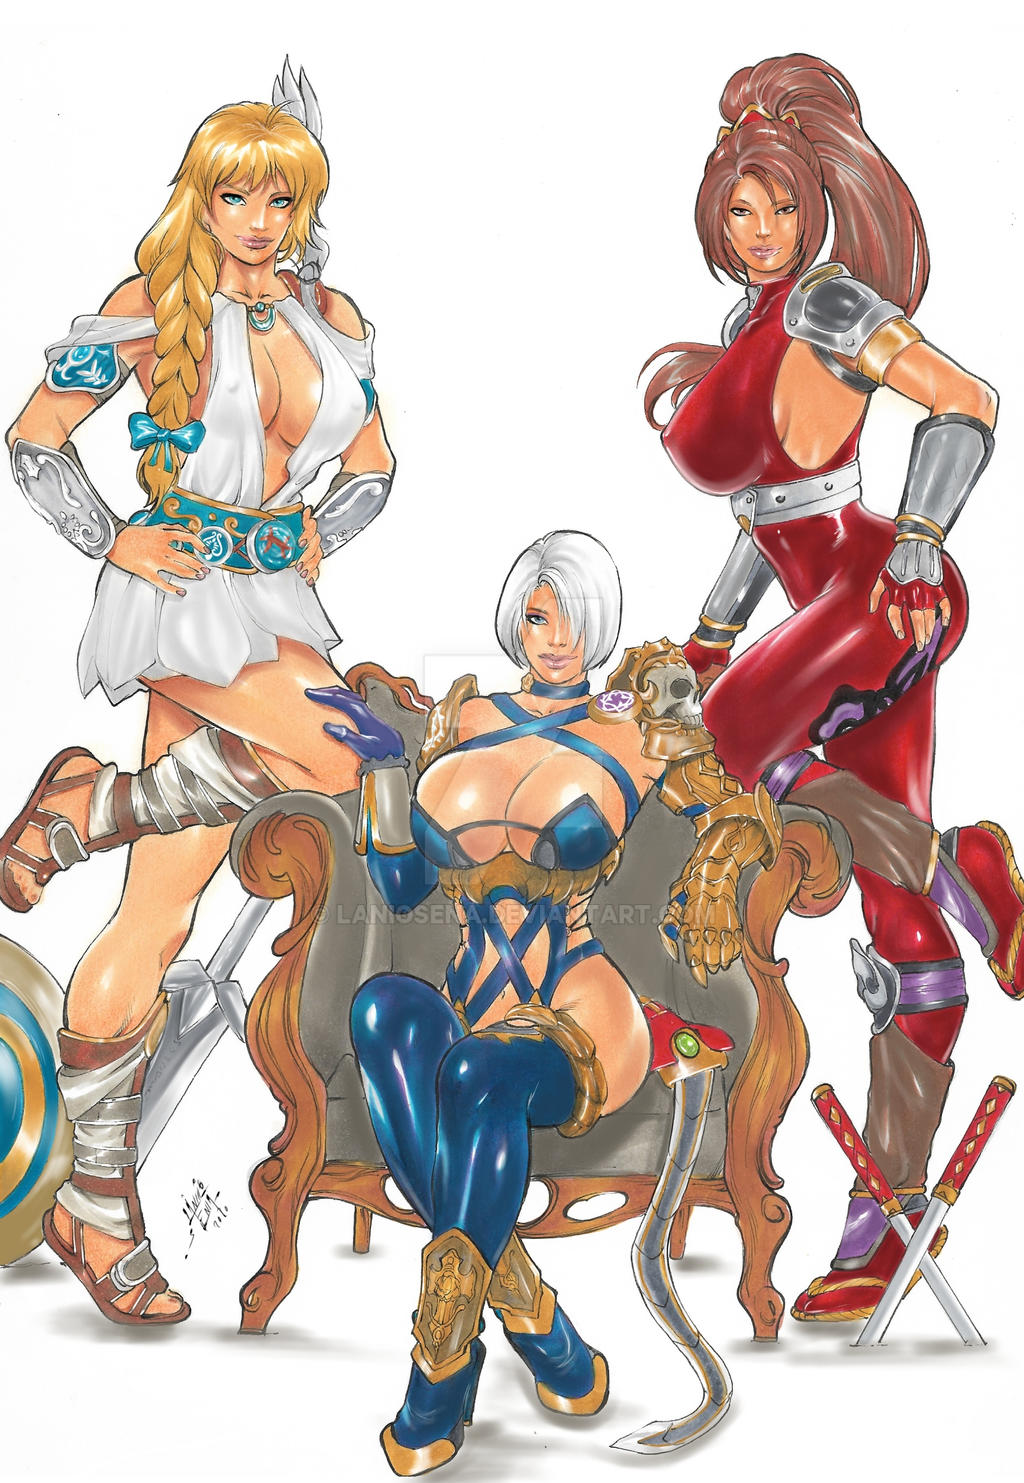 sophitia, ivy, taki, Soulcalibur-commission